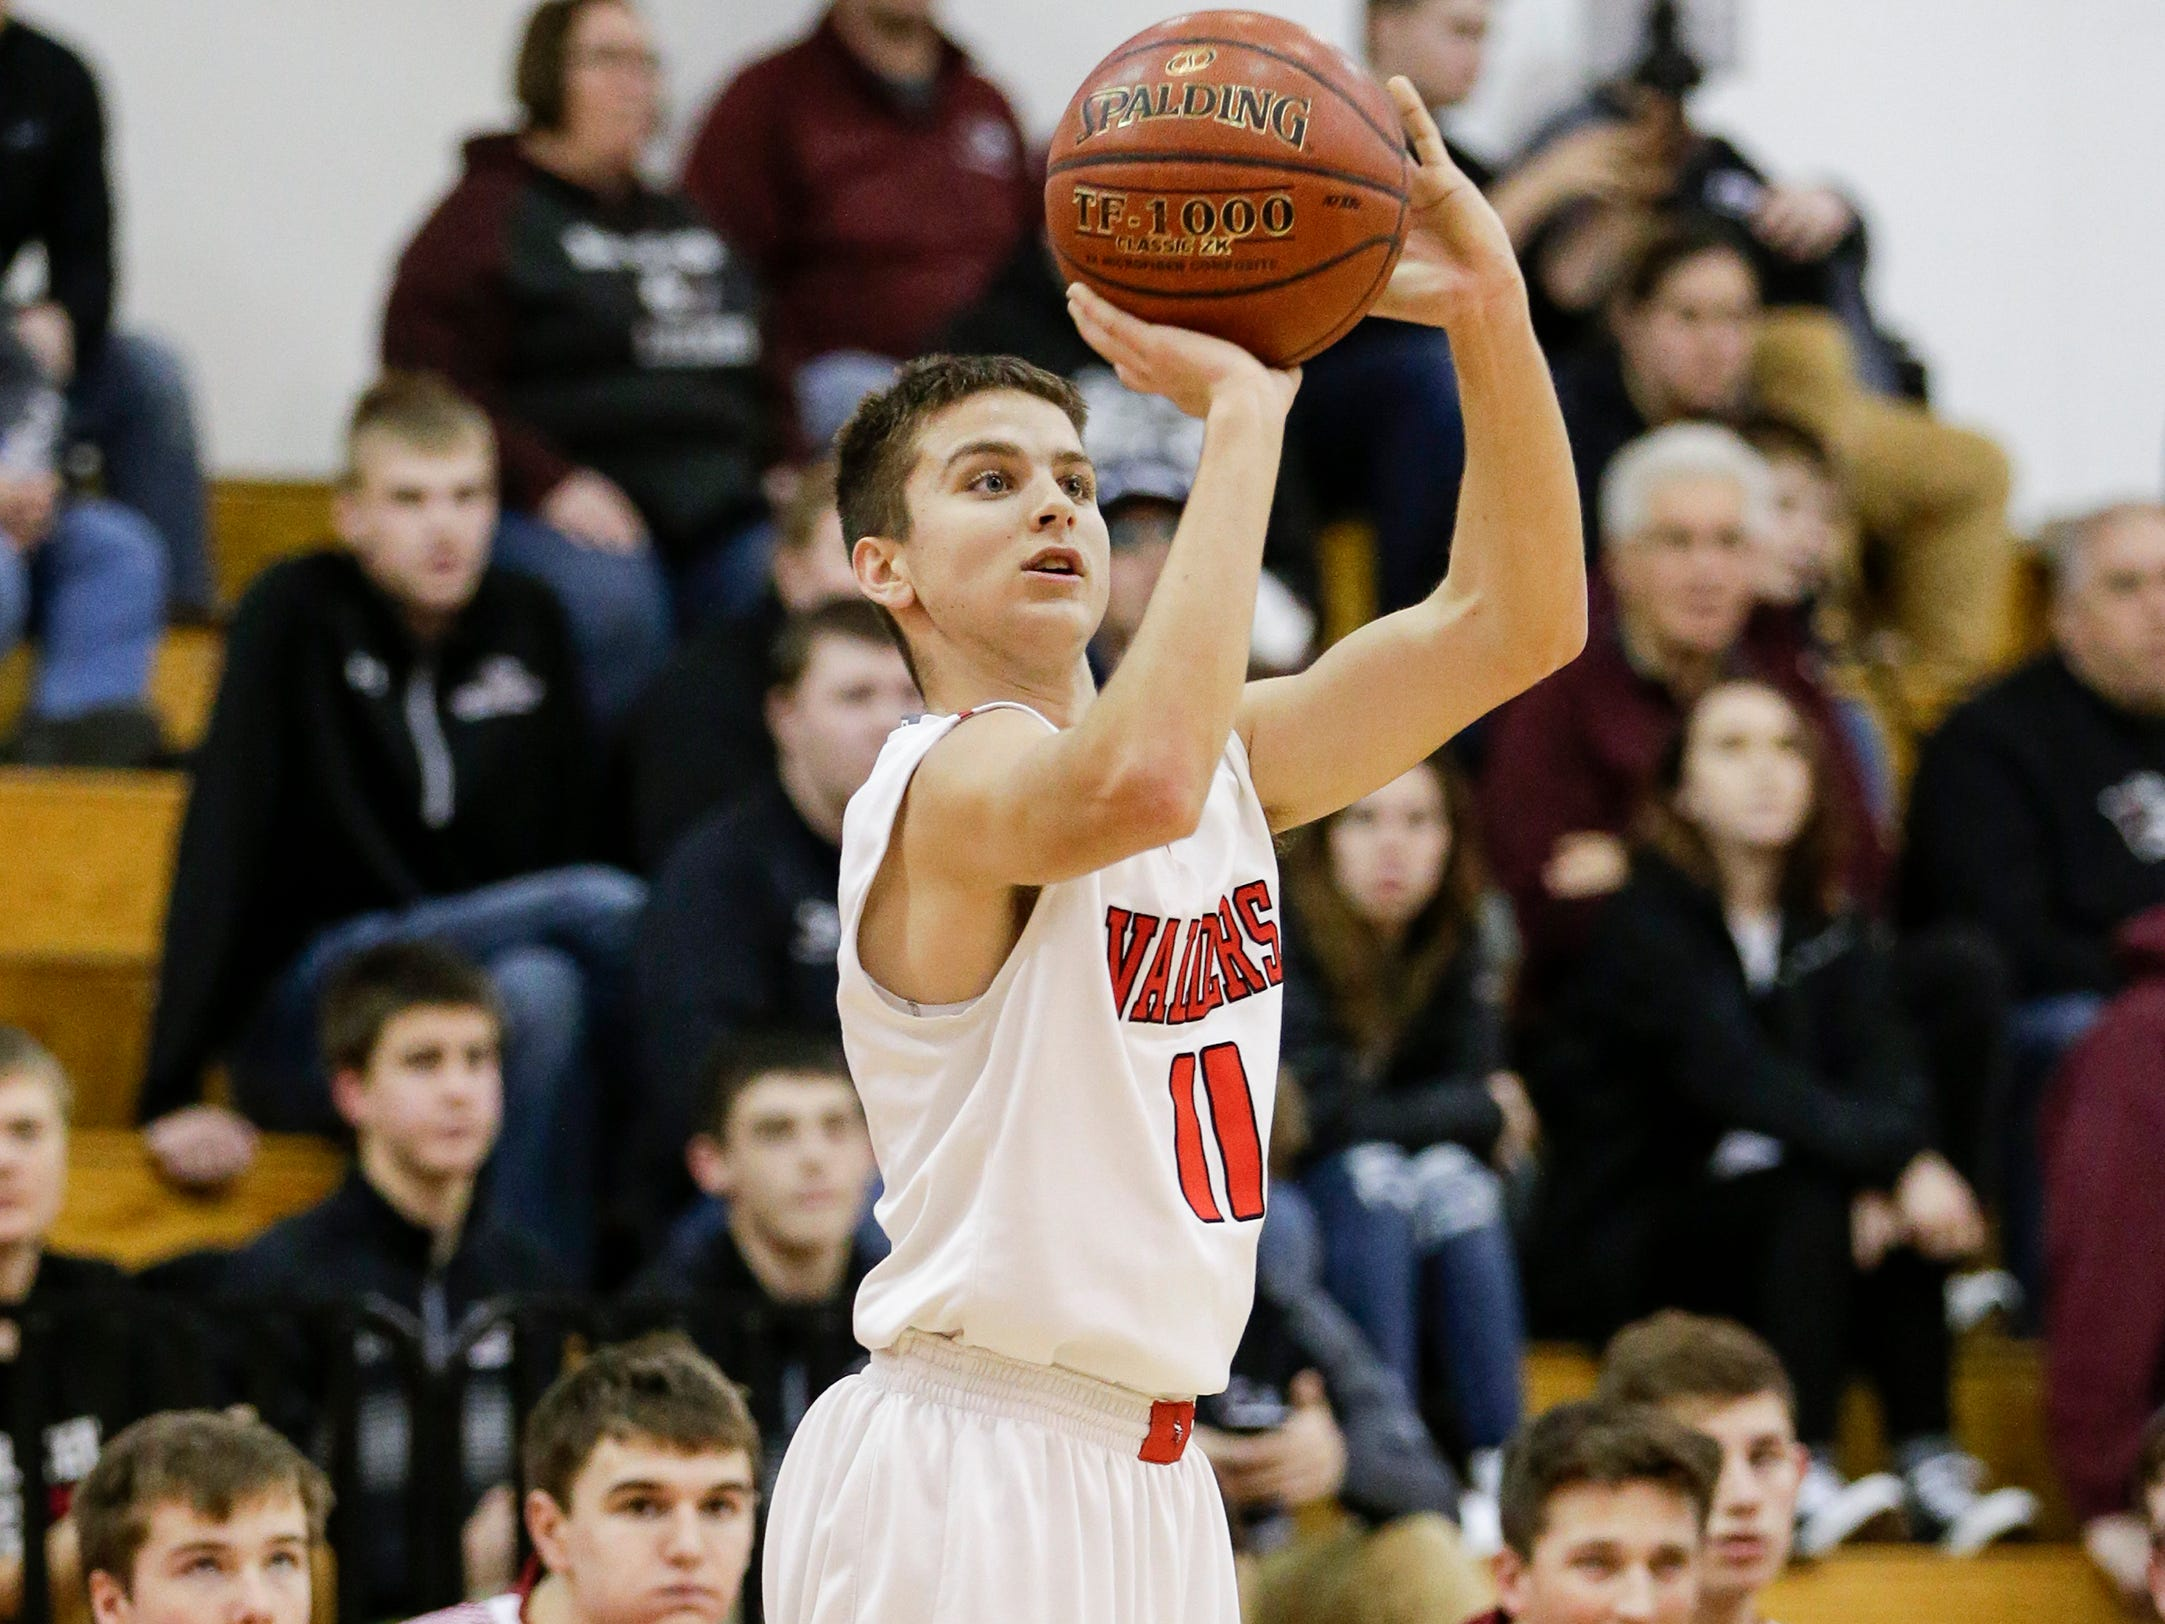 Valders' Riley Hammel (11) sinks a three point shot against New Holstein during an EWC matchup at Valders High School Tuesday, January 15, 2019, in Valders, Wis. Joshua Clark/USA TODAY NETWORK-Wisconsin